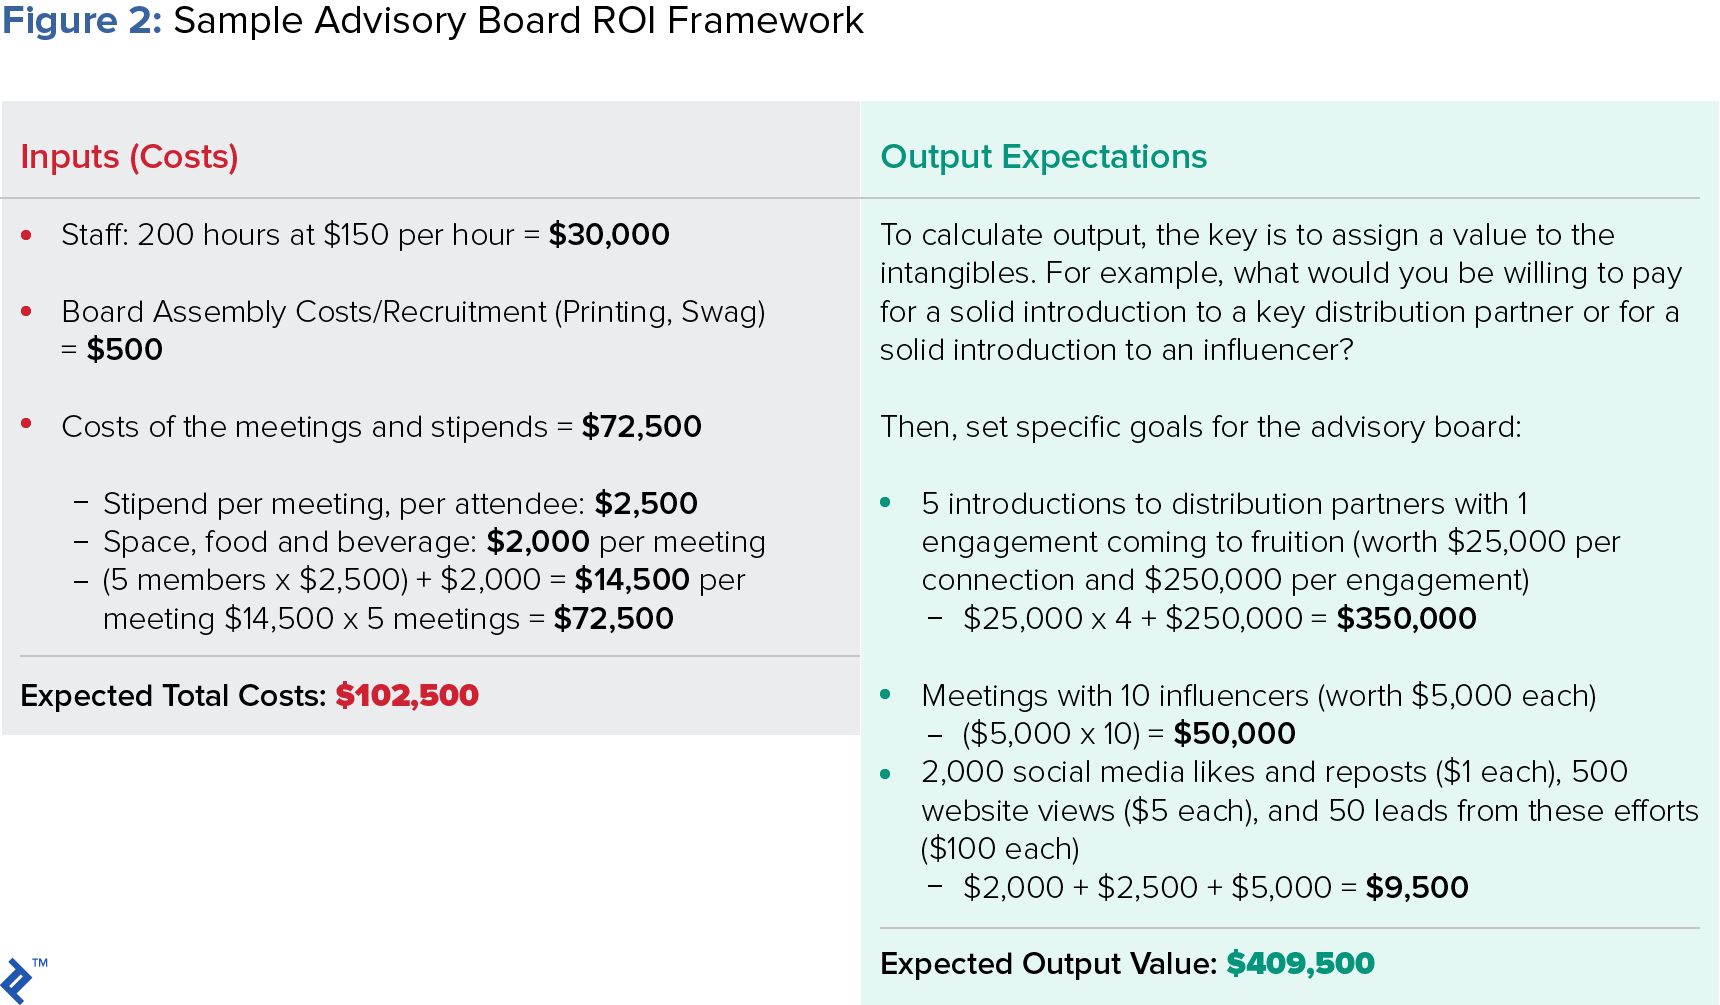 figure showing a sample advisory board ROI framework